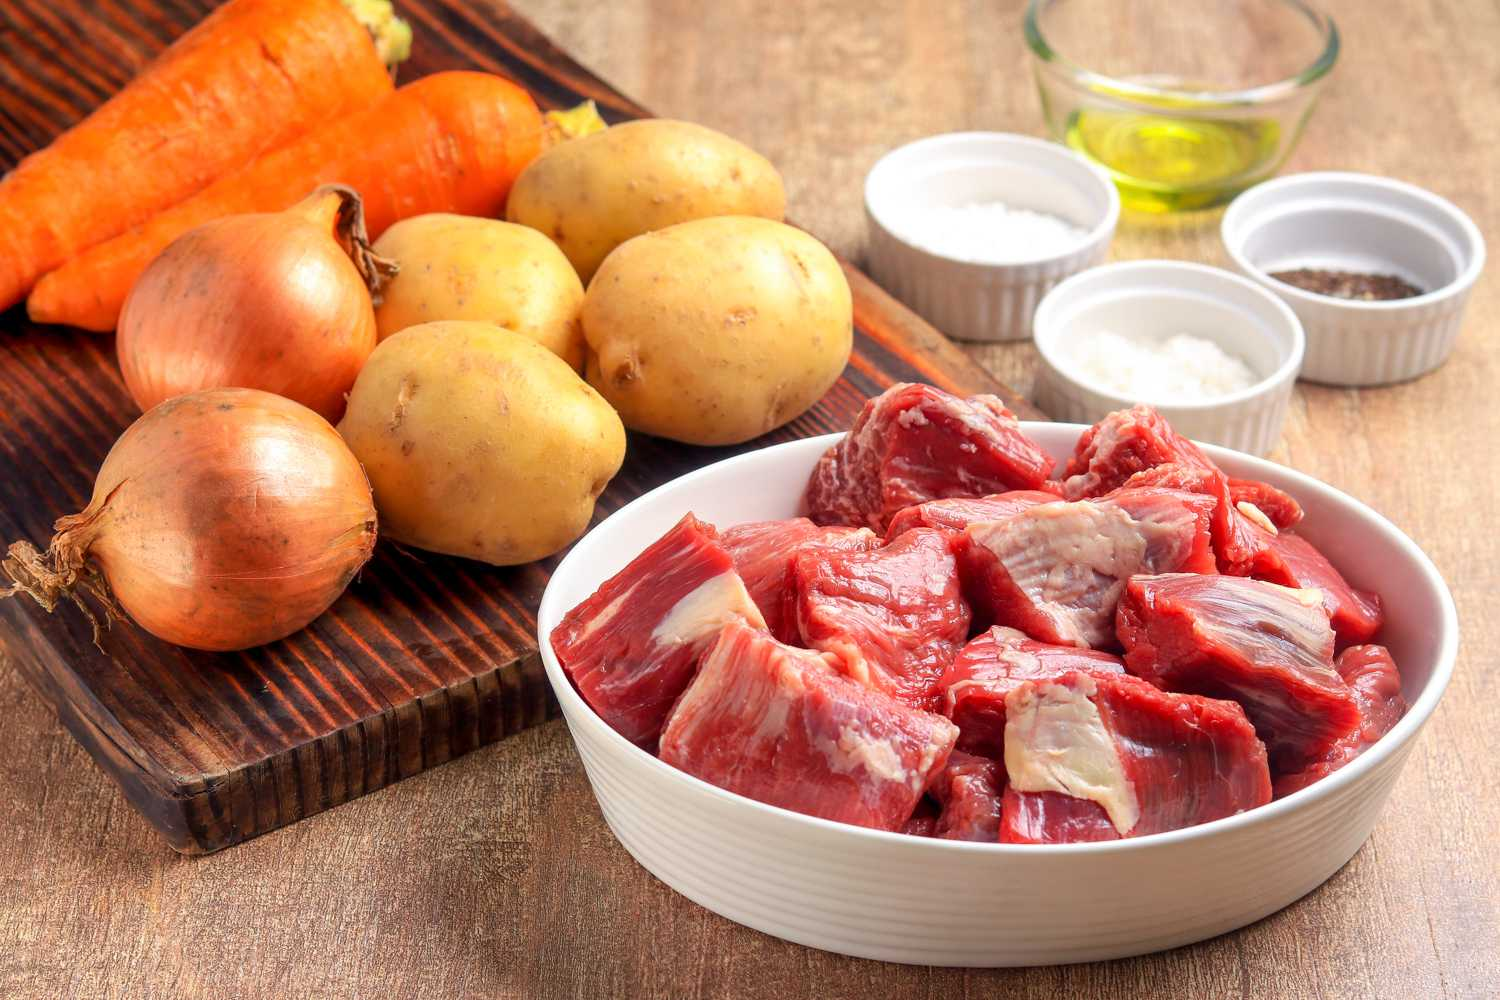 lamb stew ingredients of meat, potatoes, and carrots